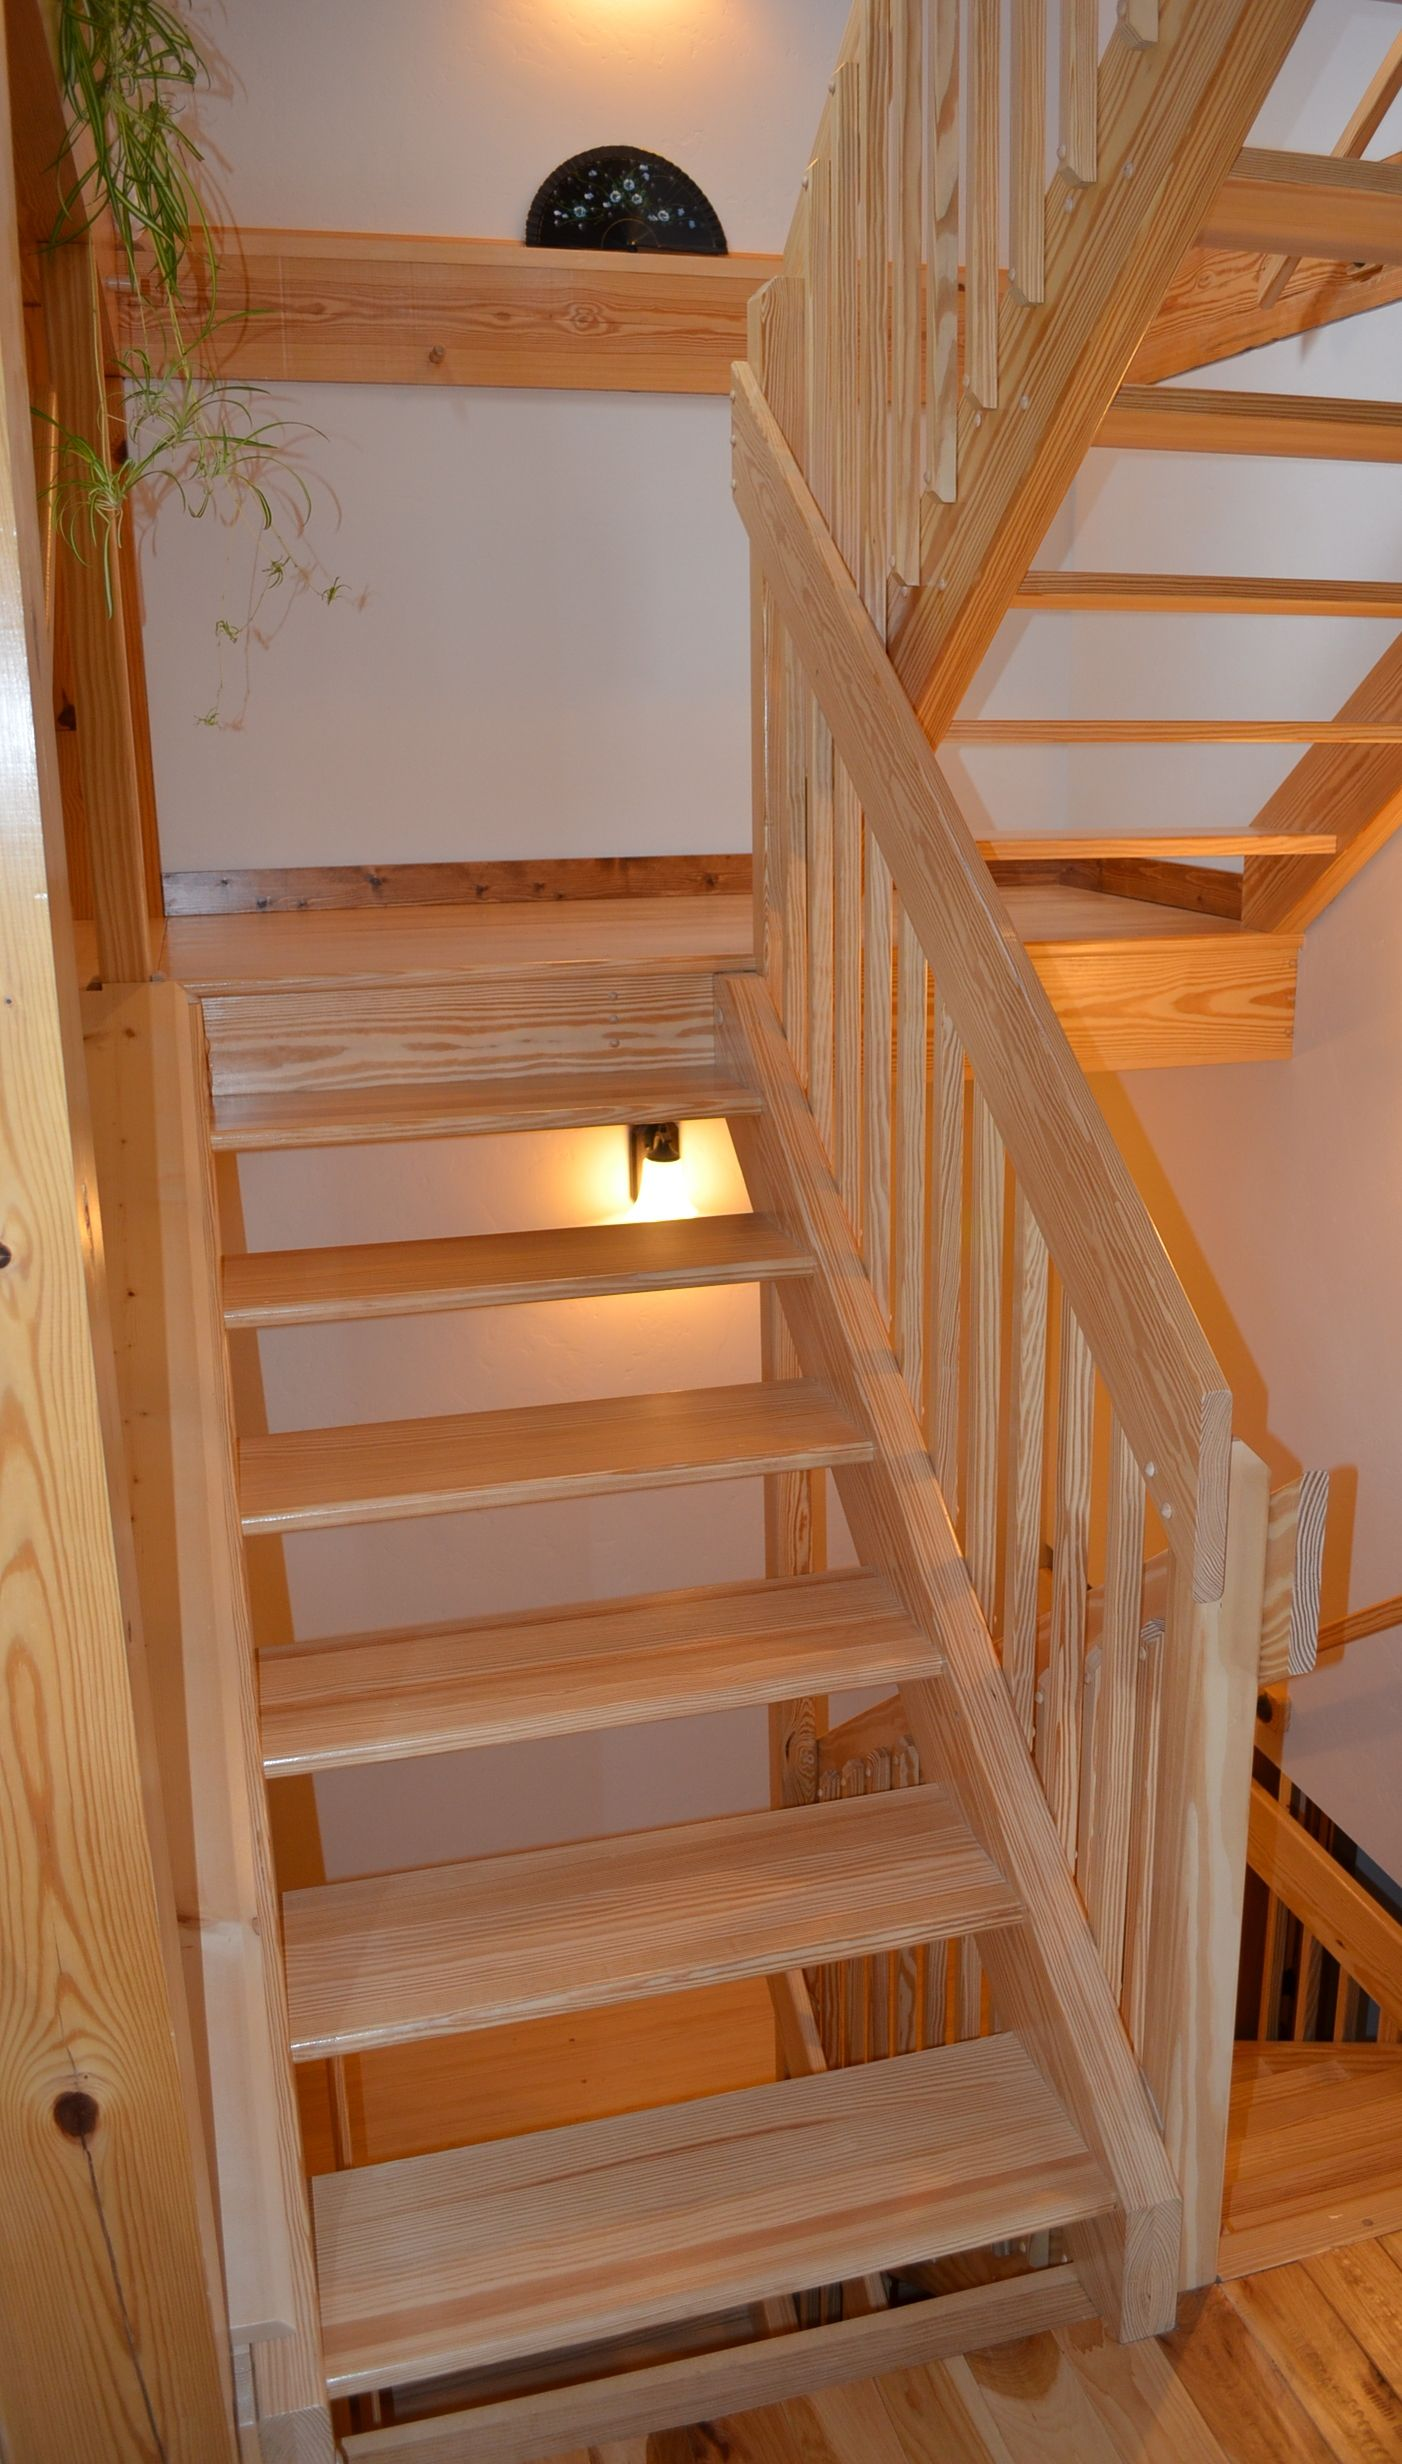 Wood Staircase Kits Precision Pine Inc Stairs Home Stairs Design Wood Staircase